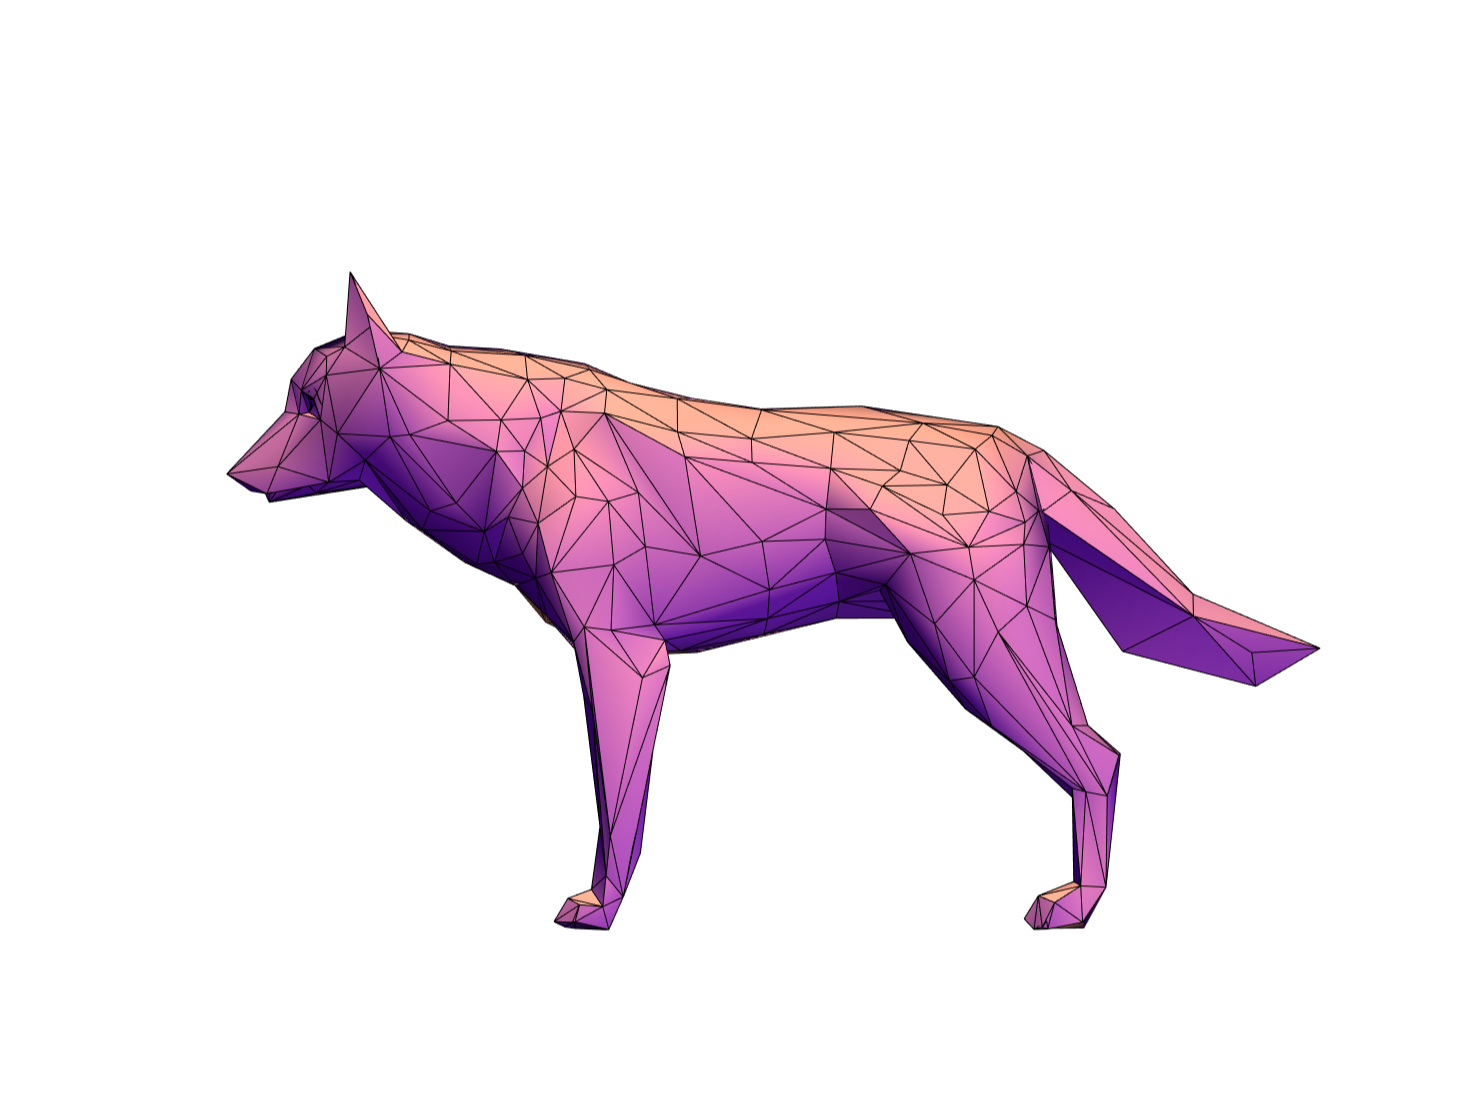 Low Poly Wolf - 3D design by xkandakex on Jan 25, 2018